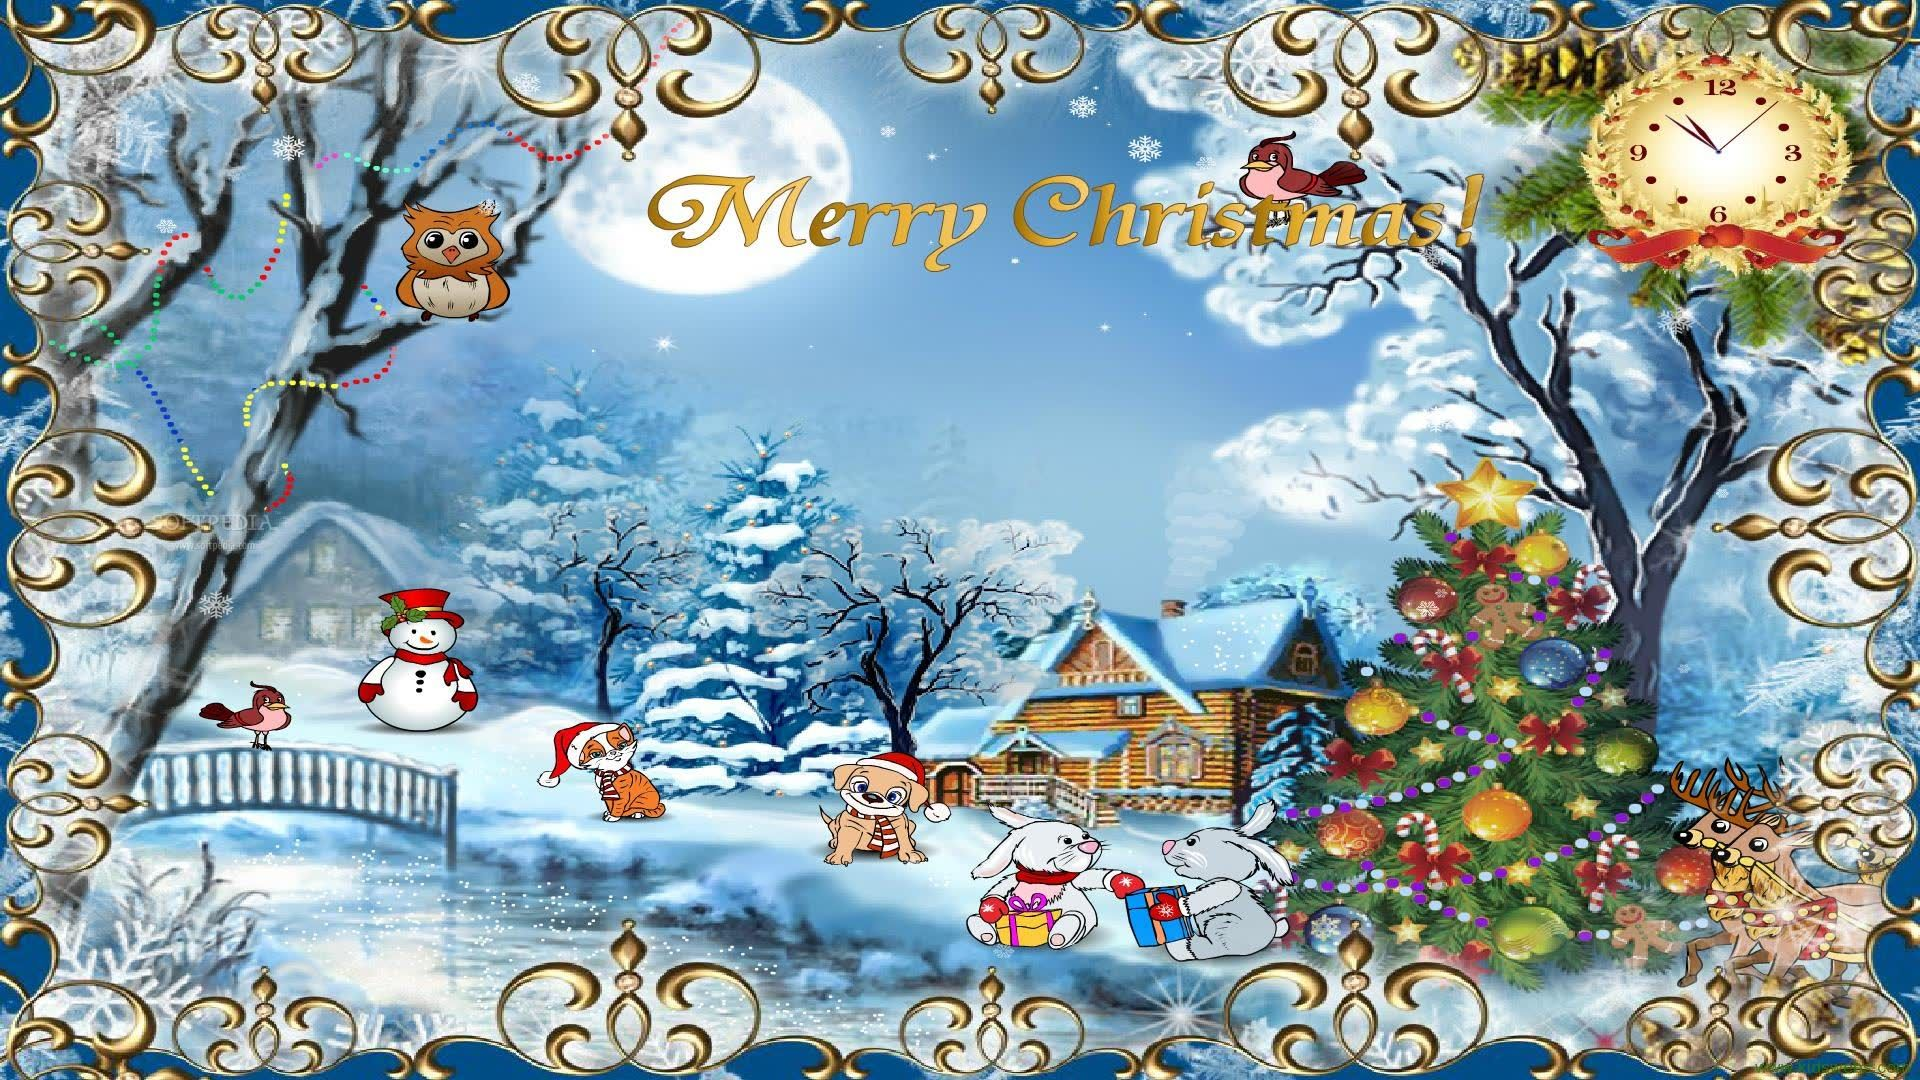 Christmas Holiday Scene Call 812 476 5122 Evansville In Christmas Card Images Christmas Cards Free Free Animated Christmas Cards